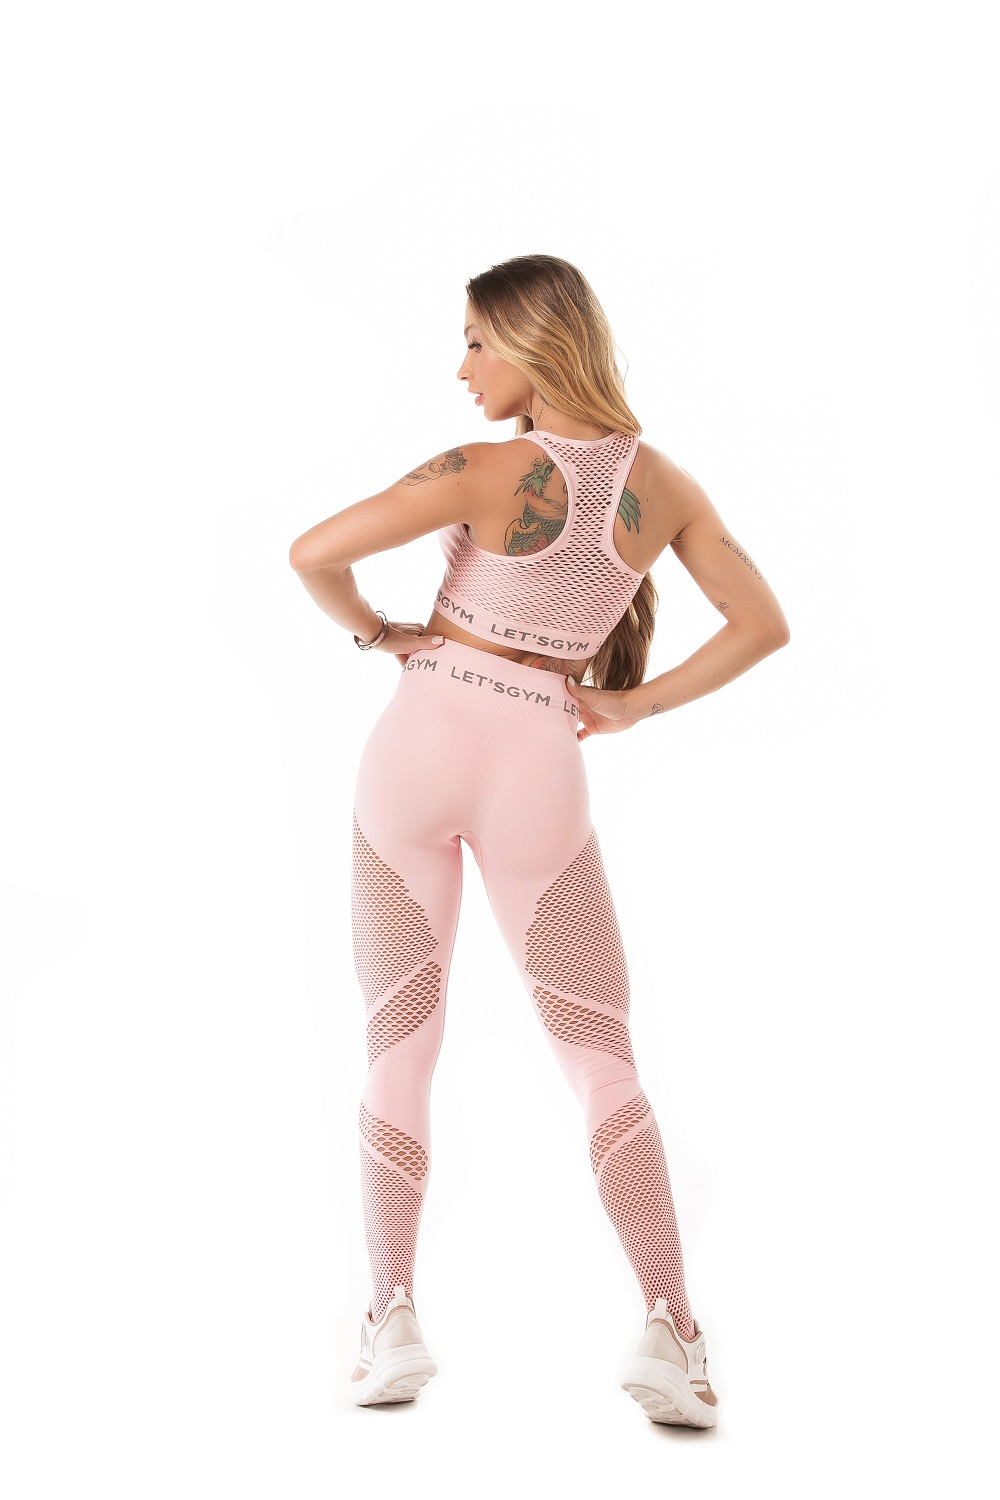 TOP SEAMLESS STYLISH SEM COSTURA ROSA LETSGYM